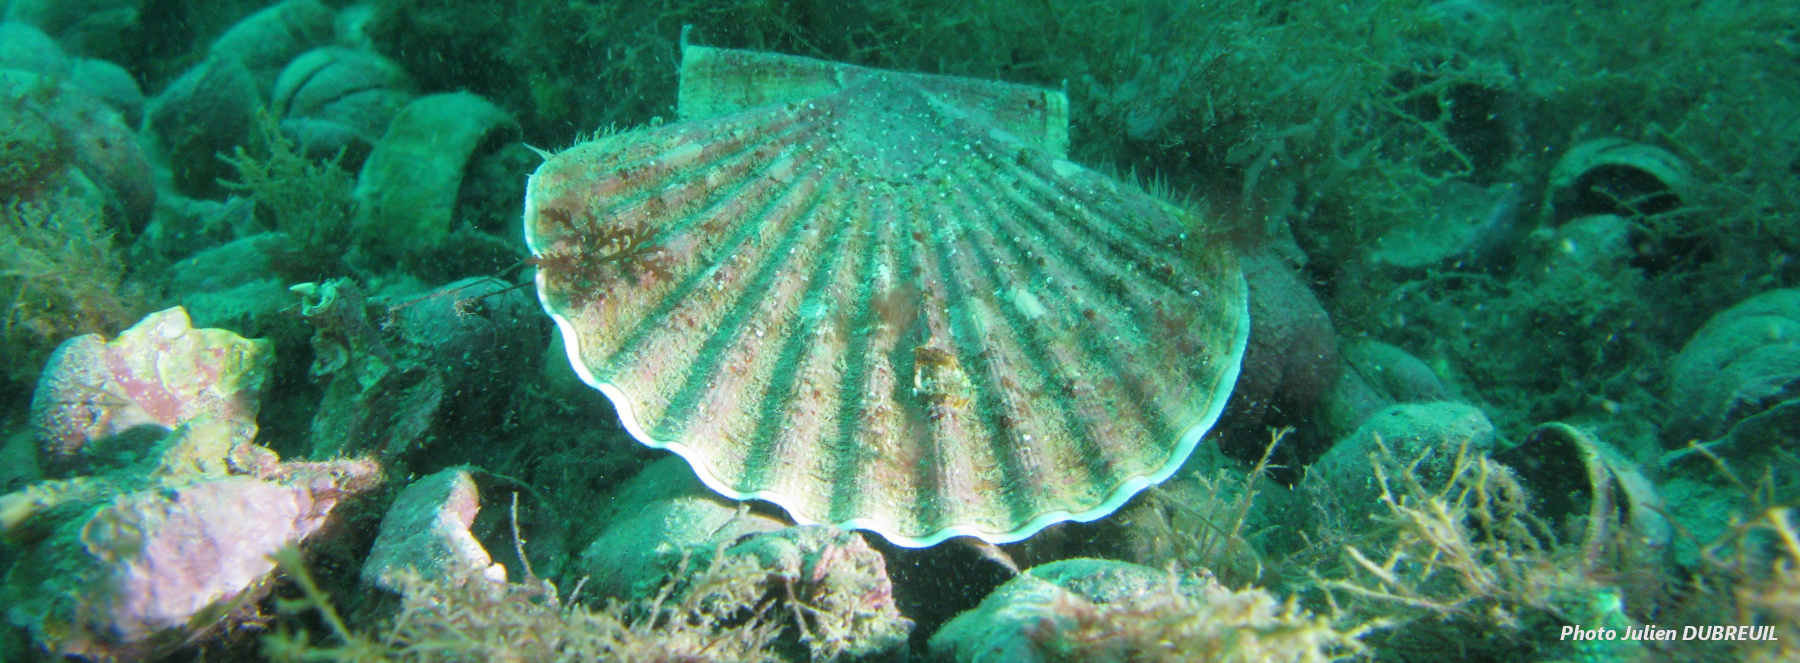 coquille sous-marine